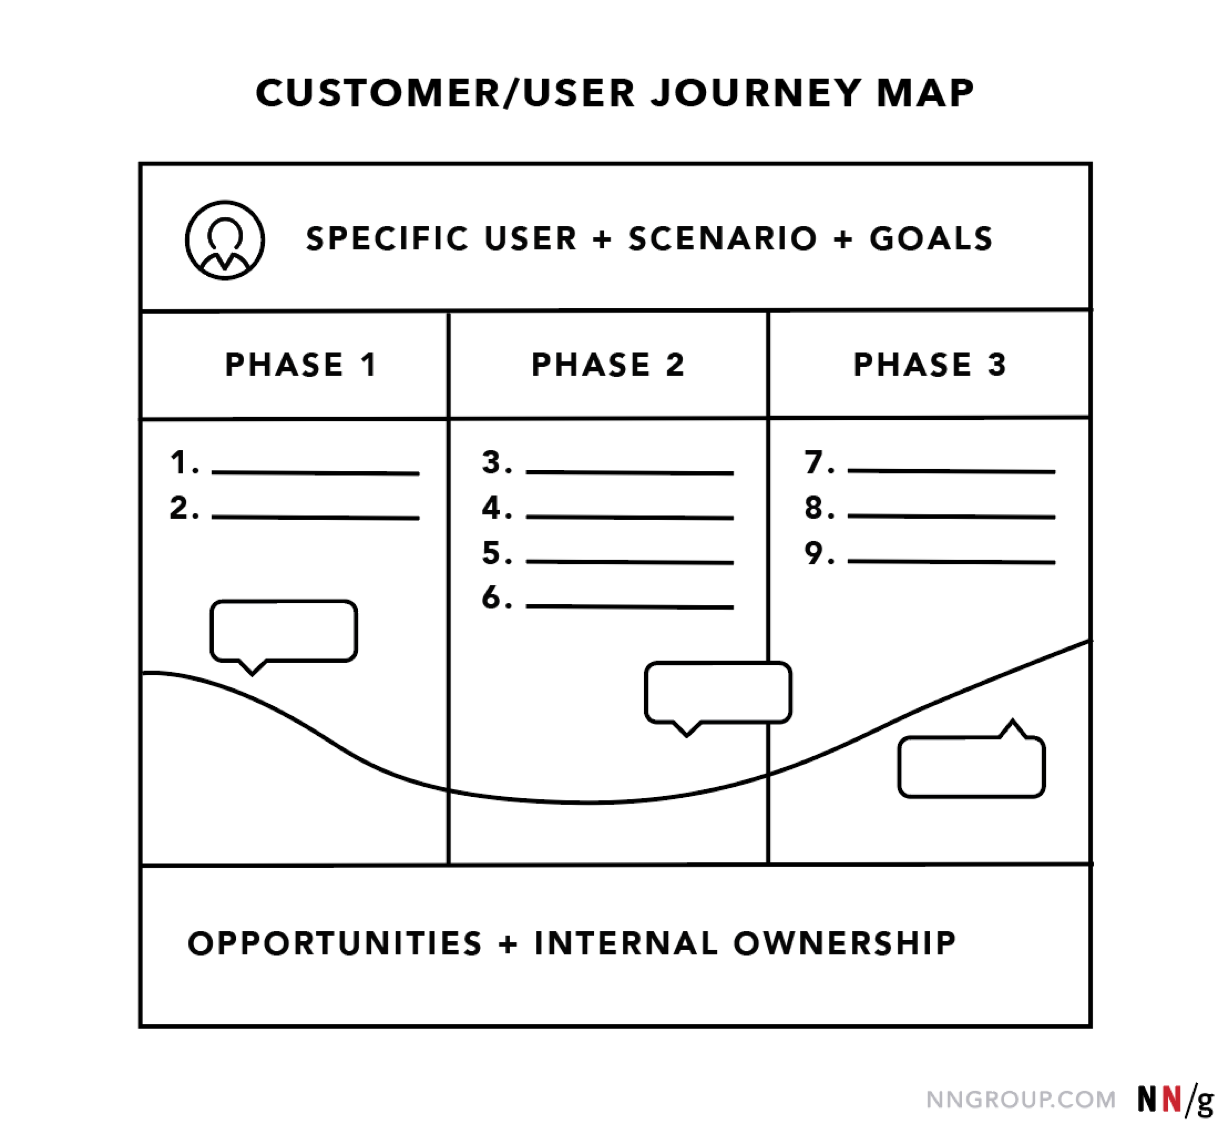 Customer journey map flowchart